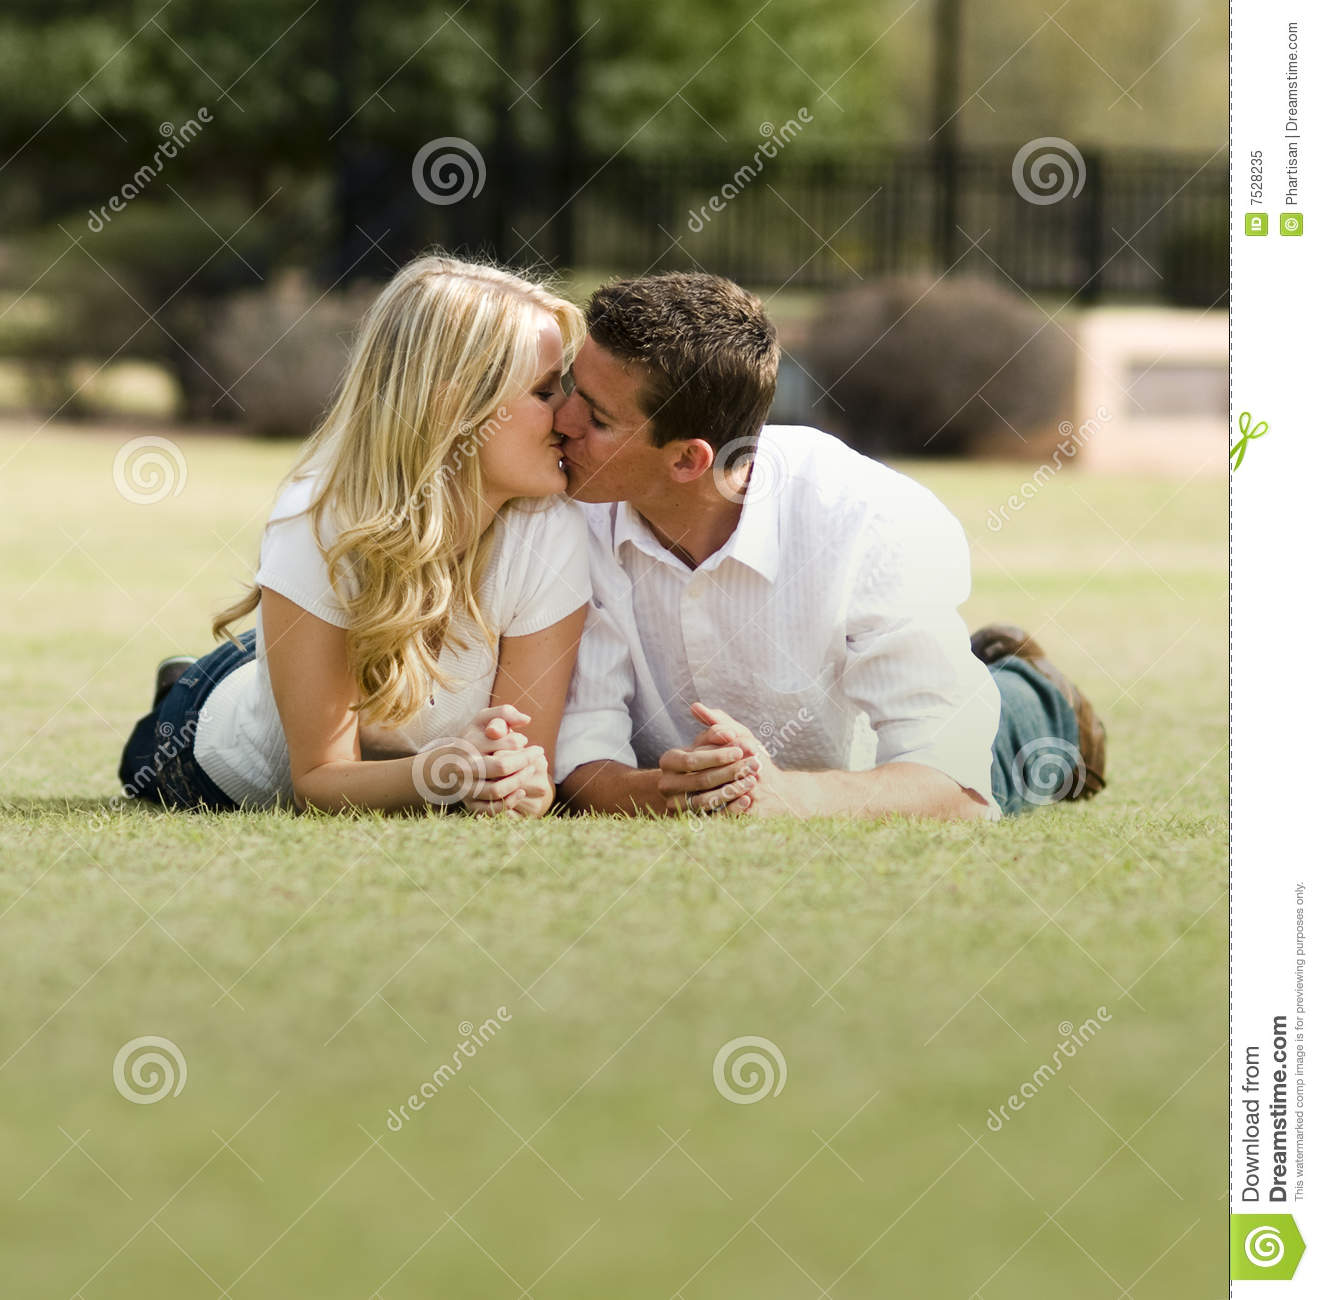 romantic kiss in park stock image image of relationship 7528235